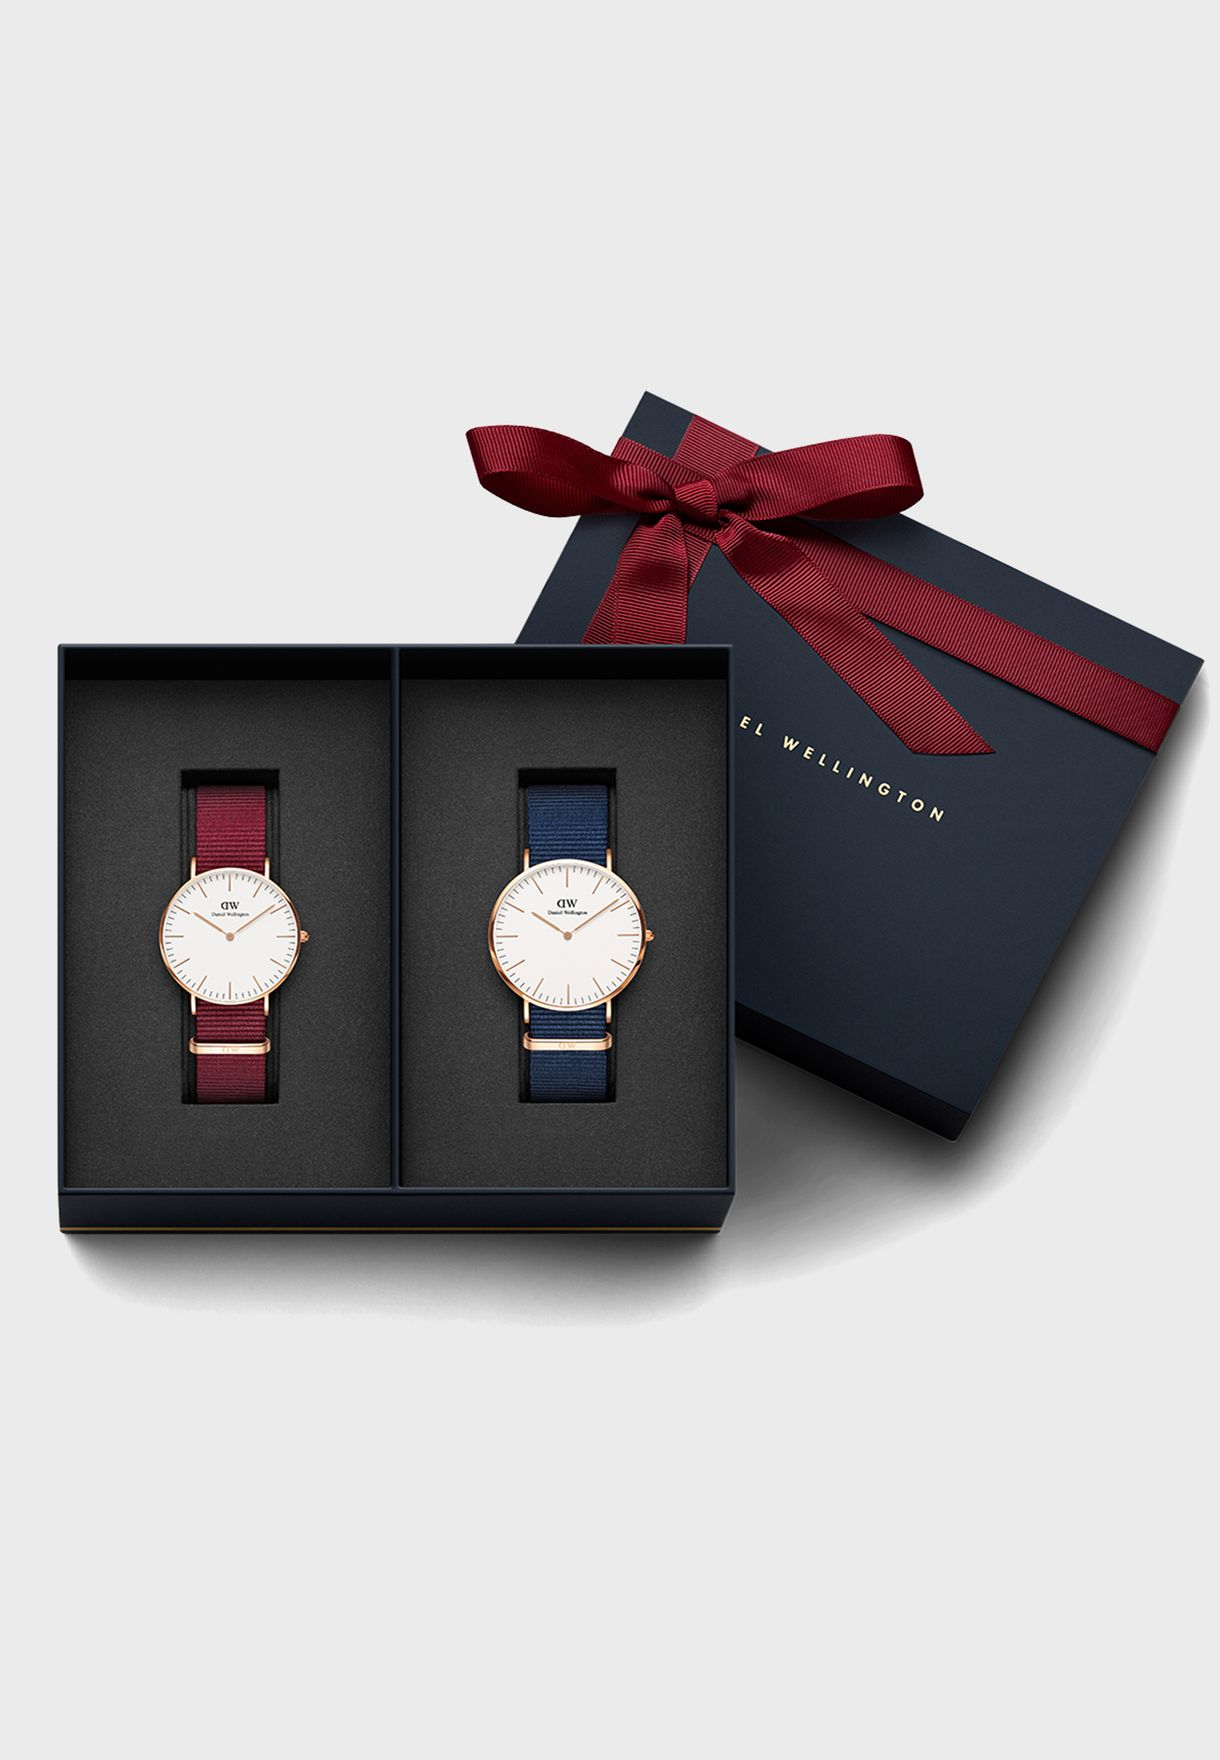 Multipack Roselyn+Bayswater Analog Watch Gift Set